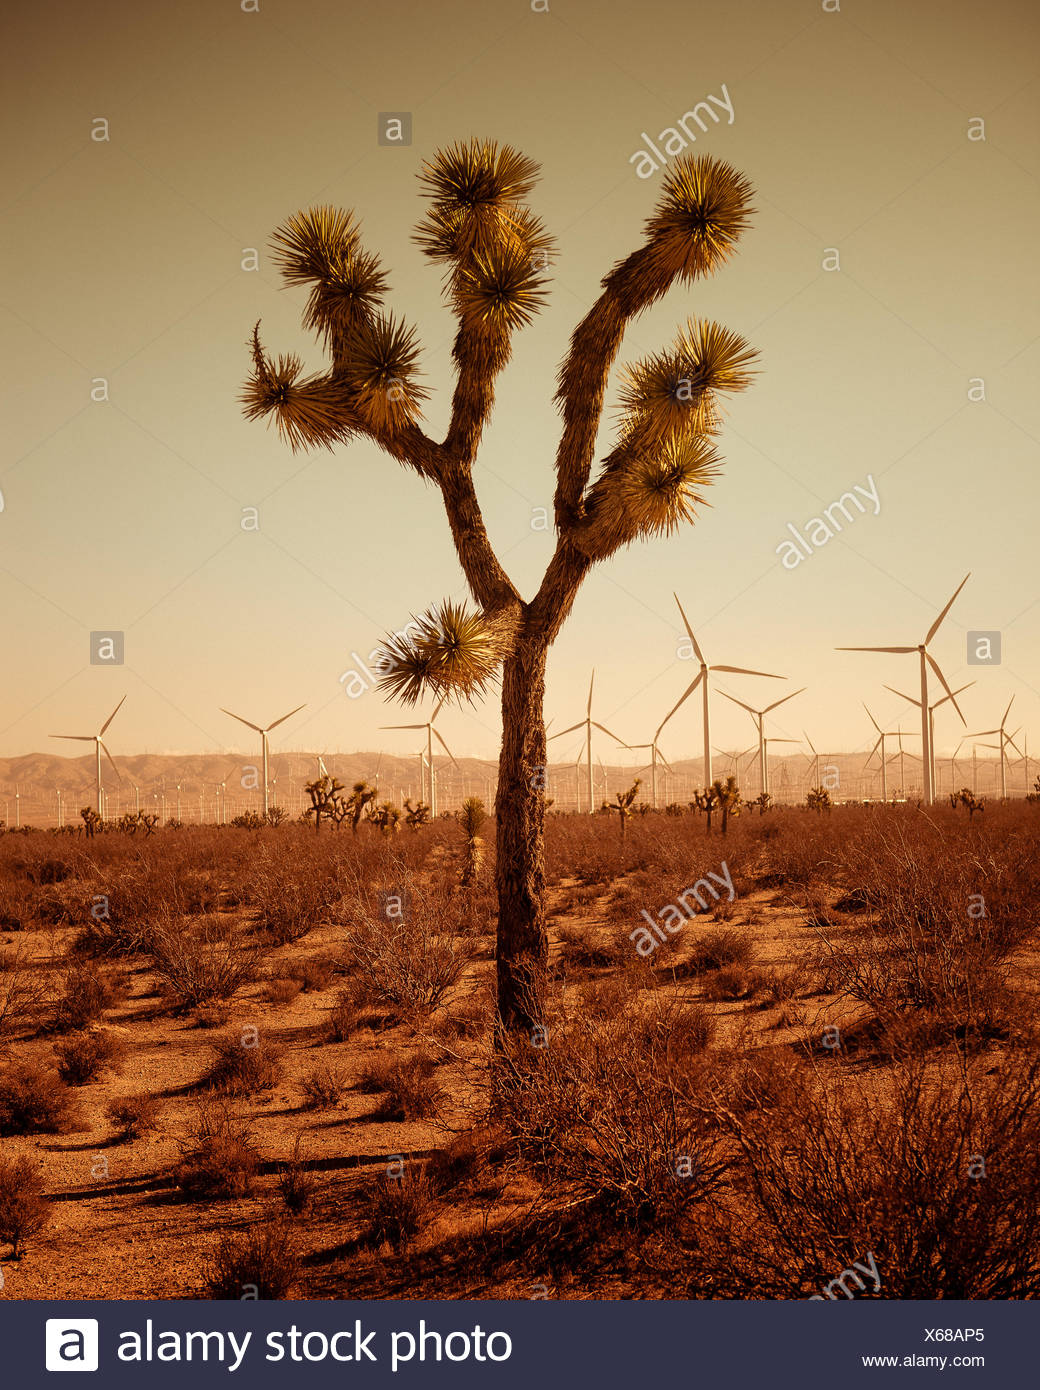 Unico albero di deserto, le turbine eoliche in background Immagini Stock